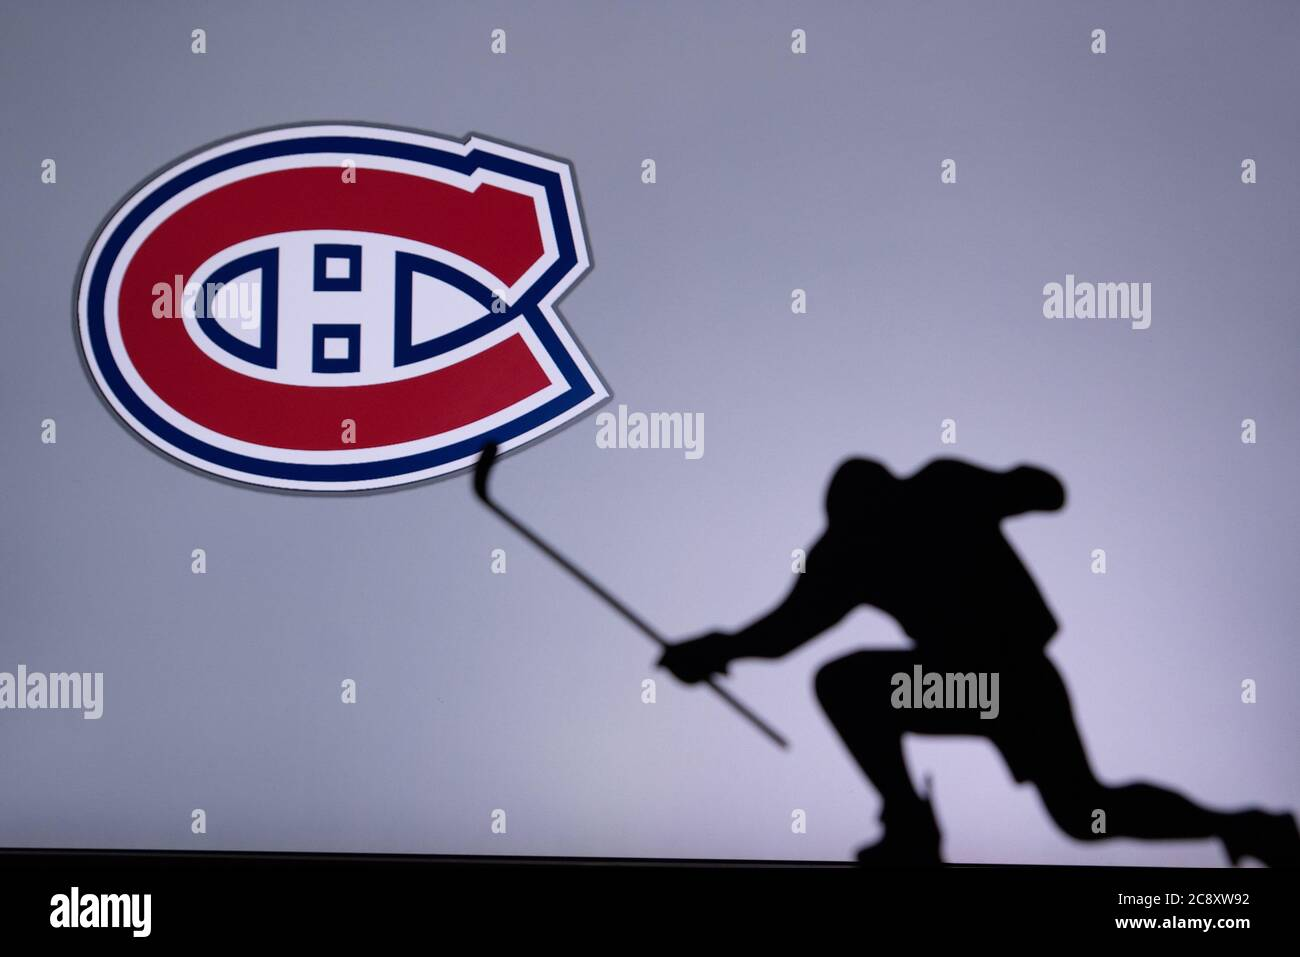 Montreal Canadiens Logo High Resolution Stock Photography And Images Alamy